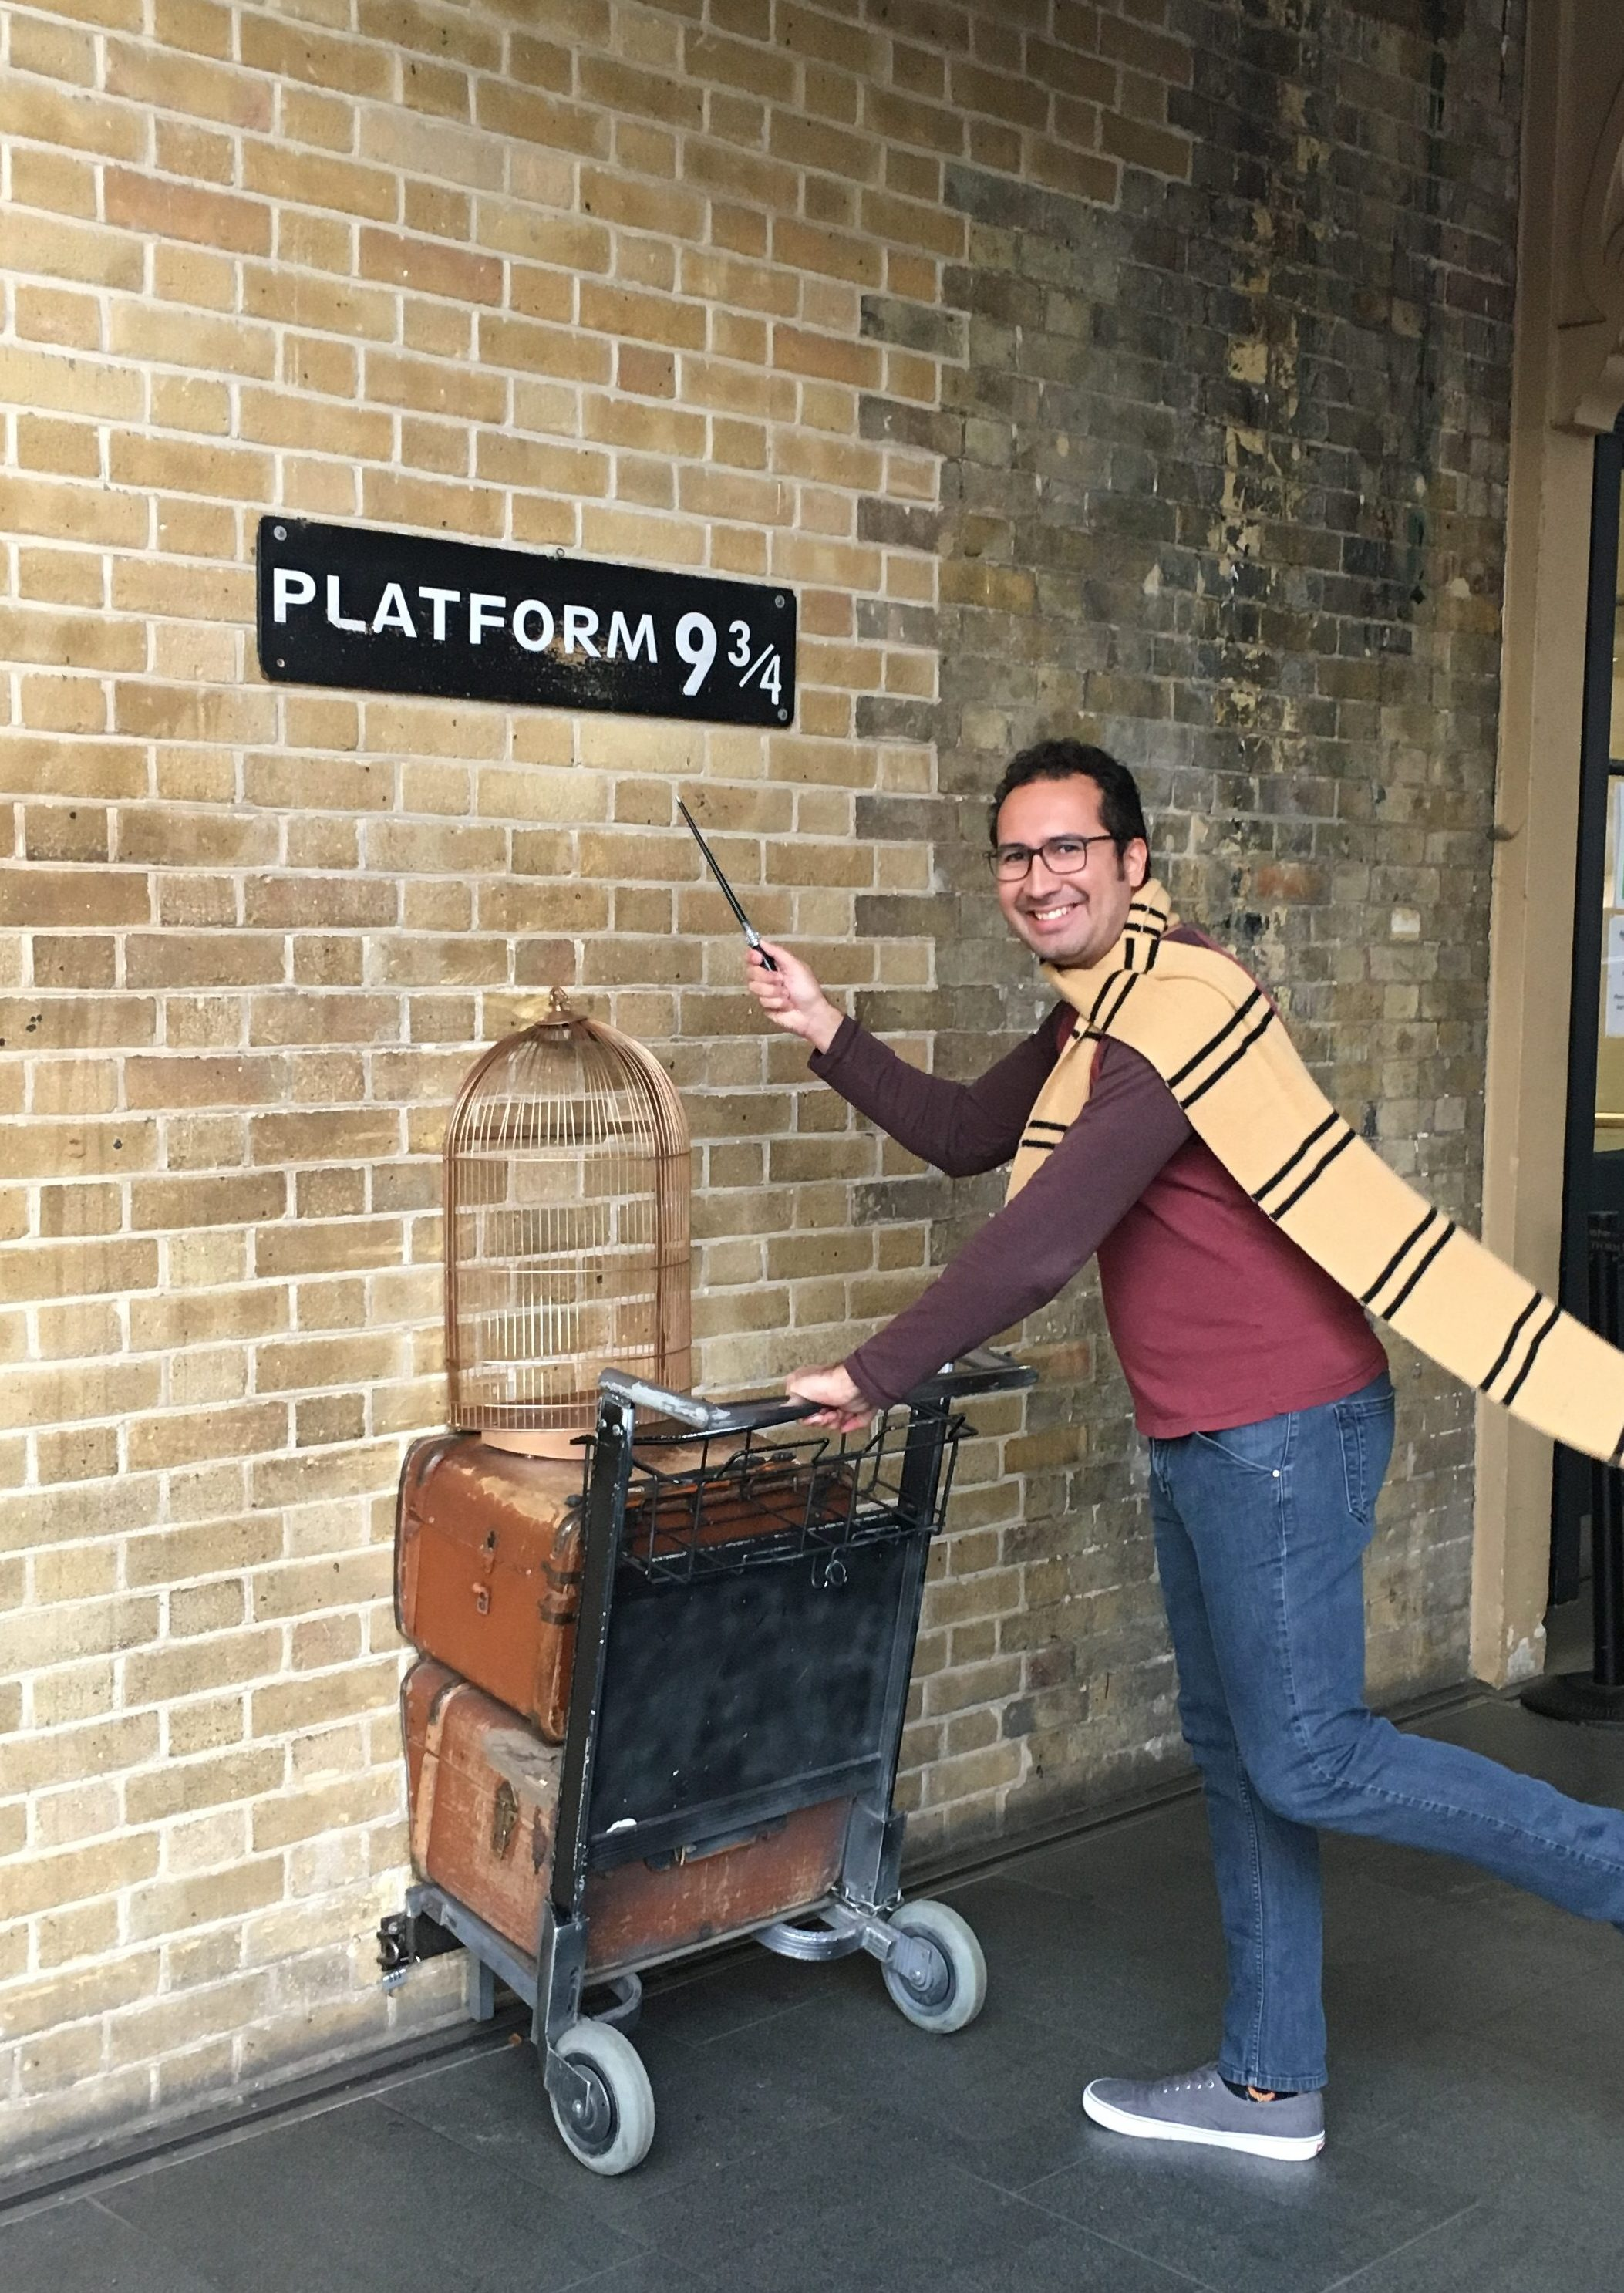 Take your photo at Platform 9 3/4